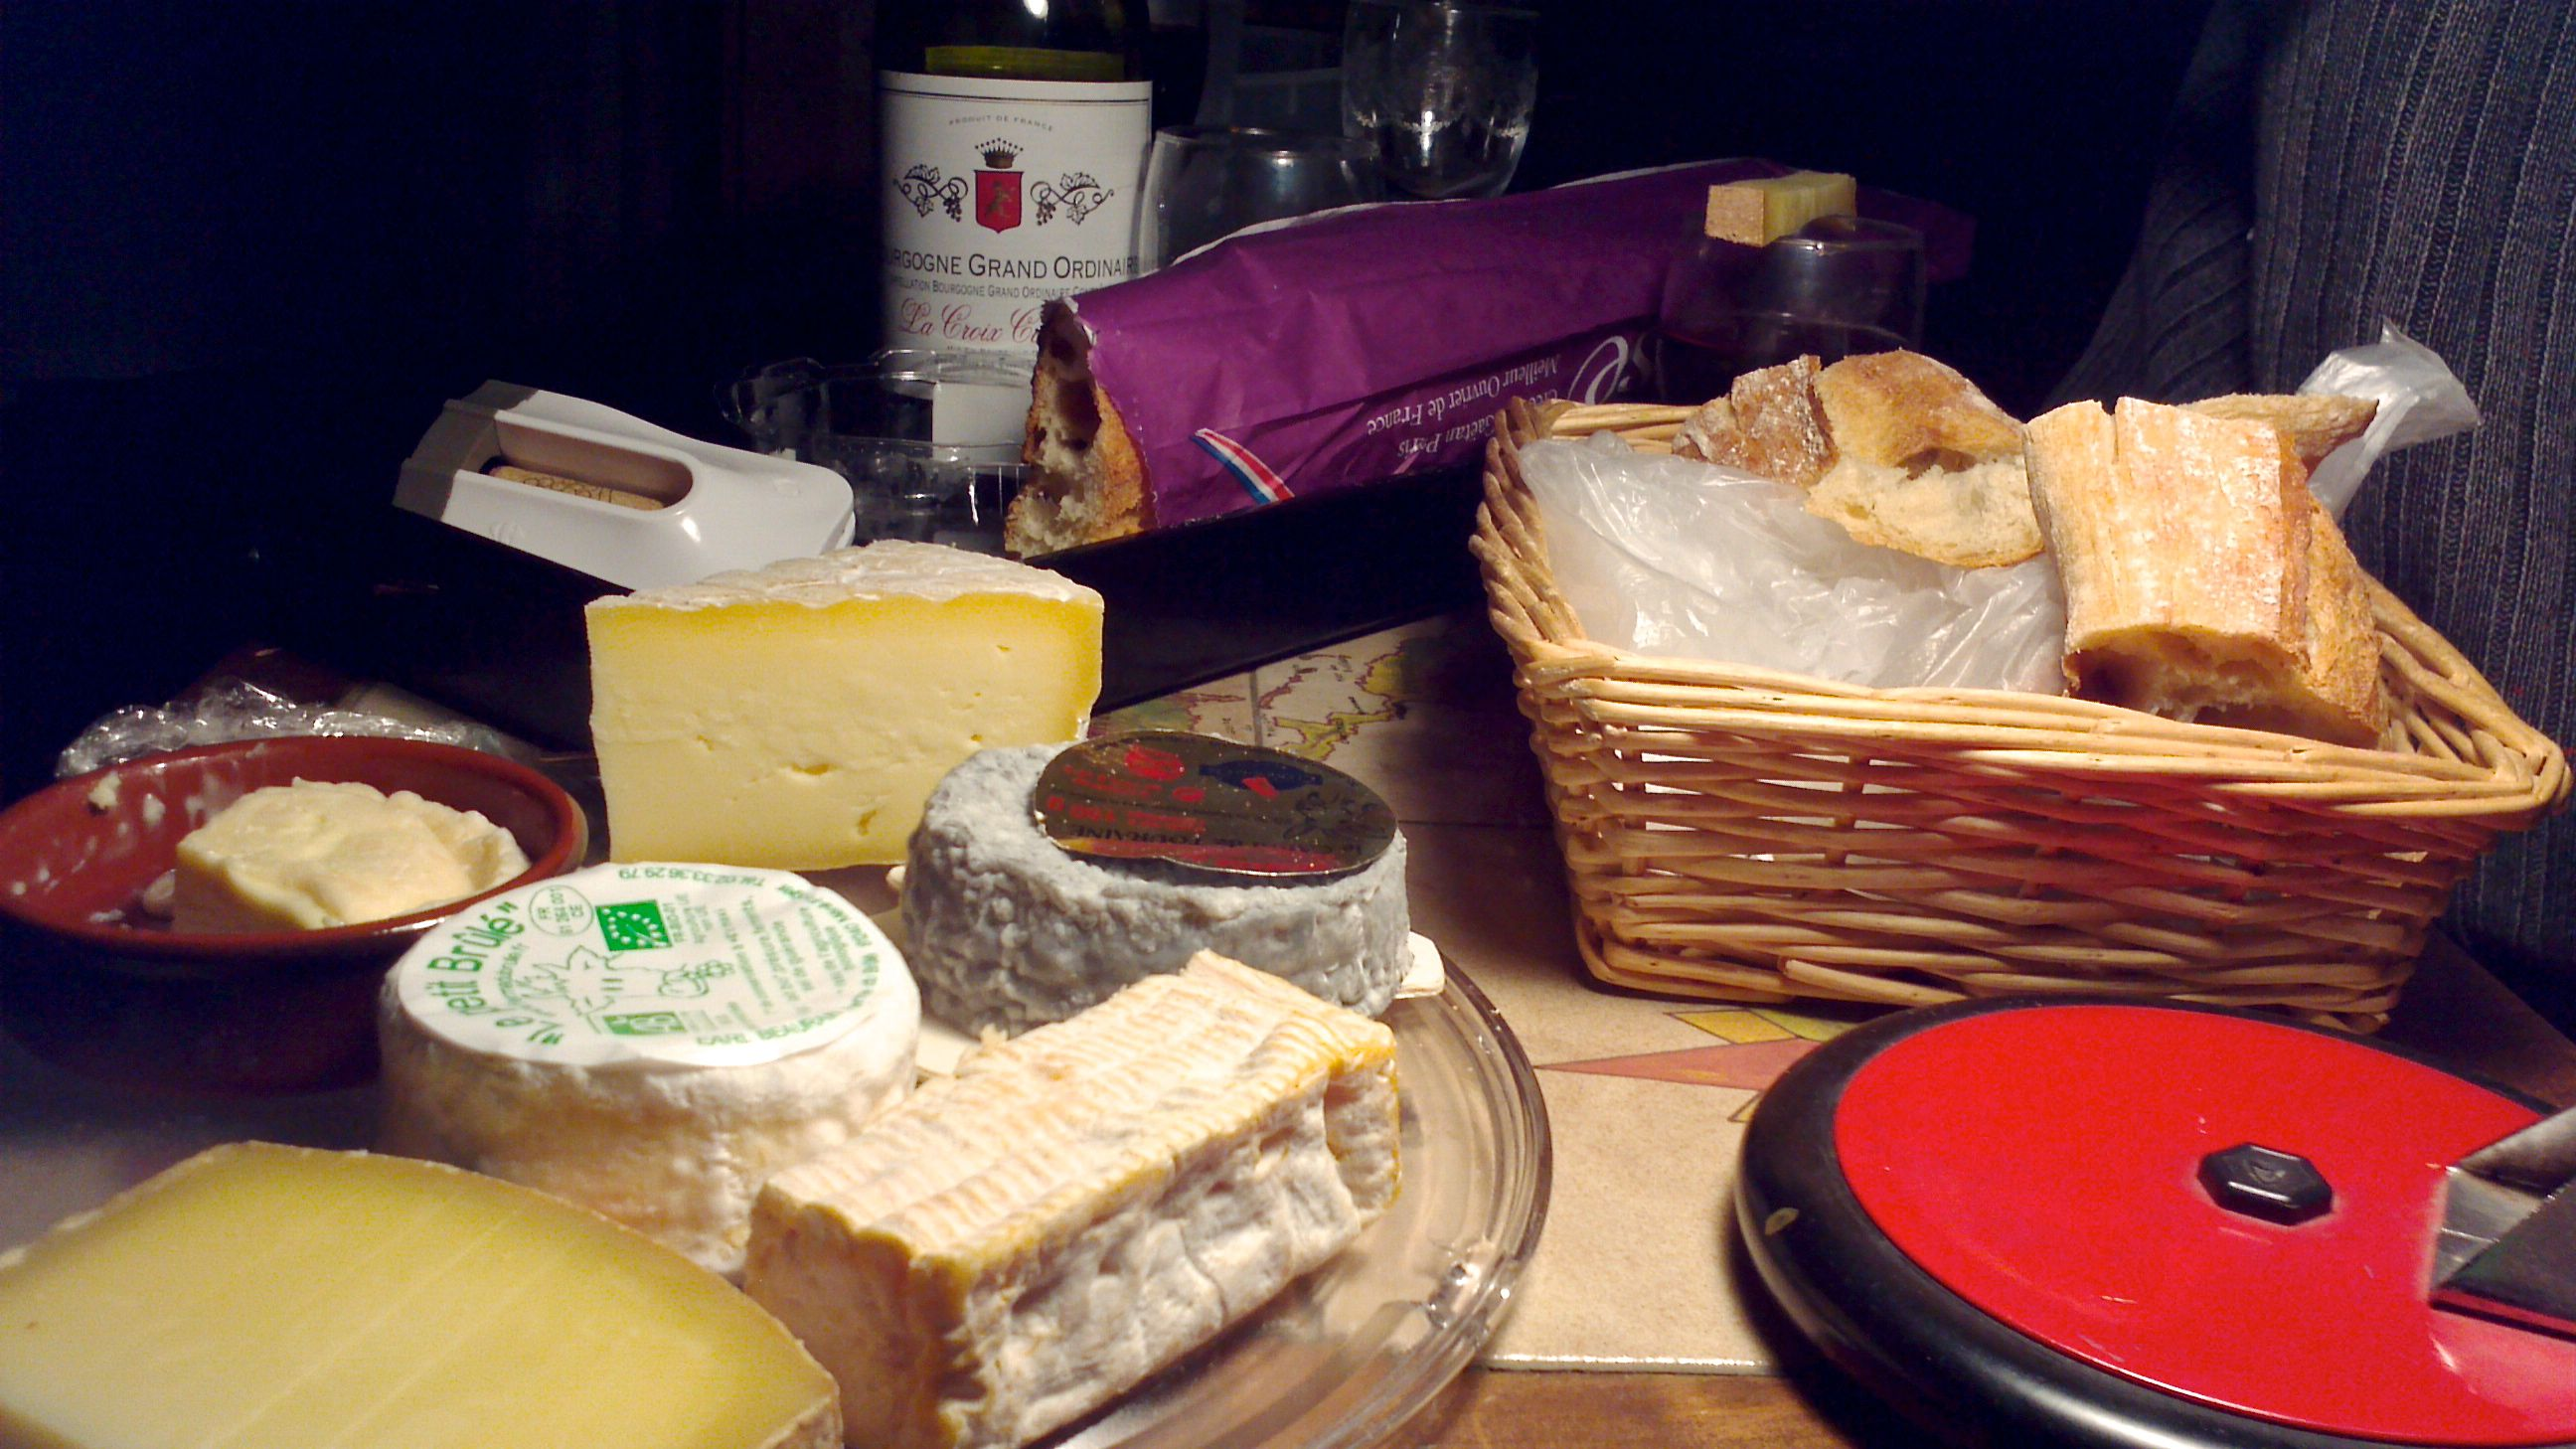 What Do We Call It? The US and EU Spar Over Cheese Names